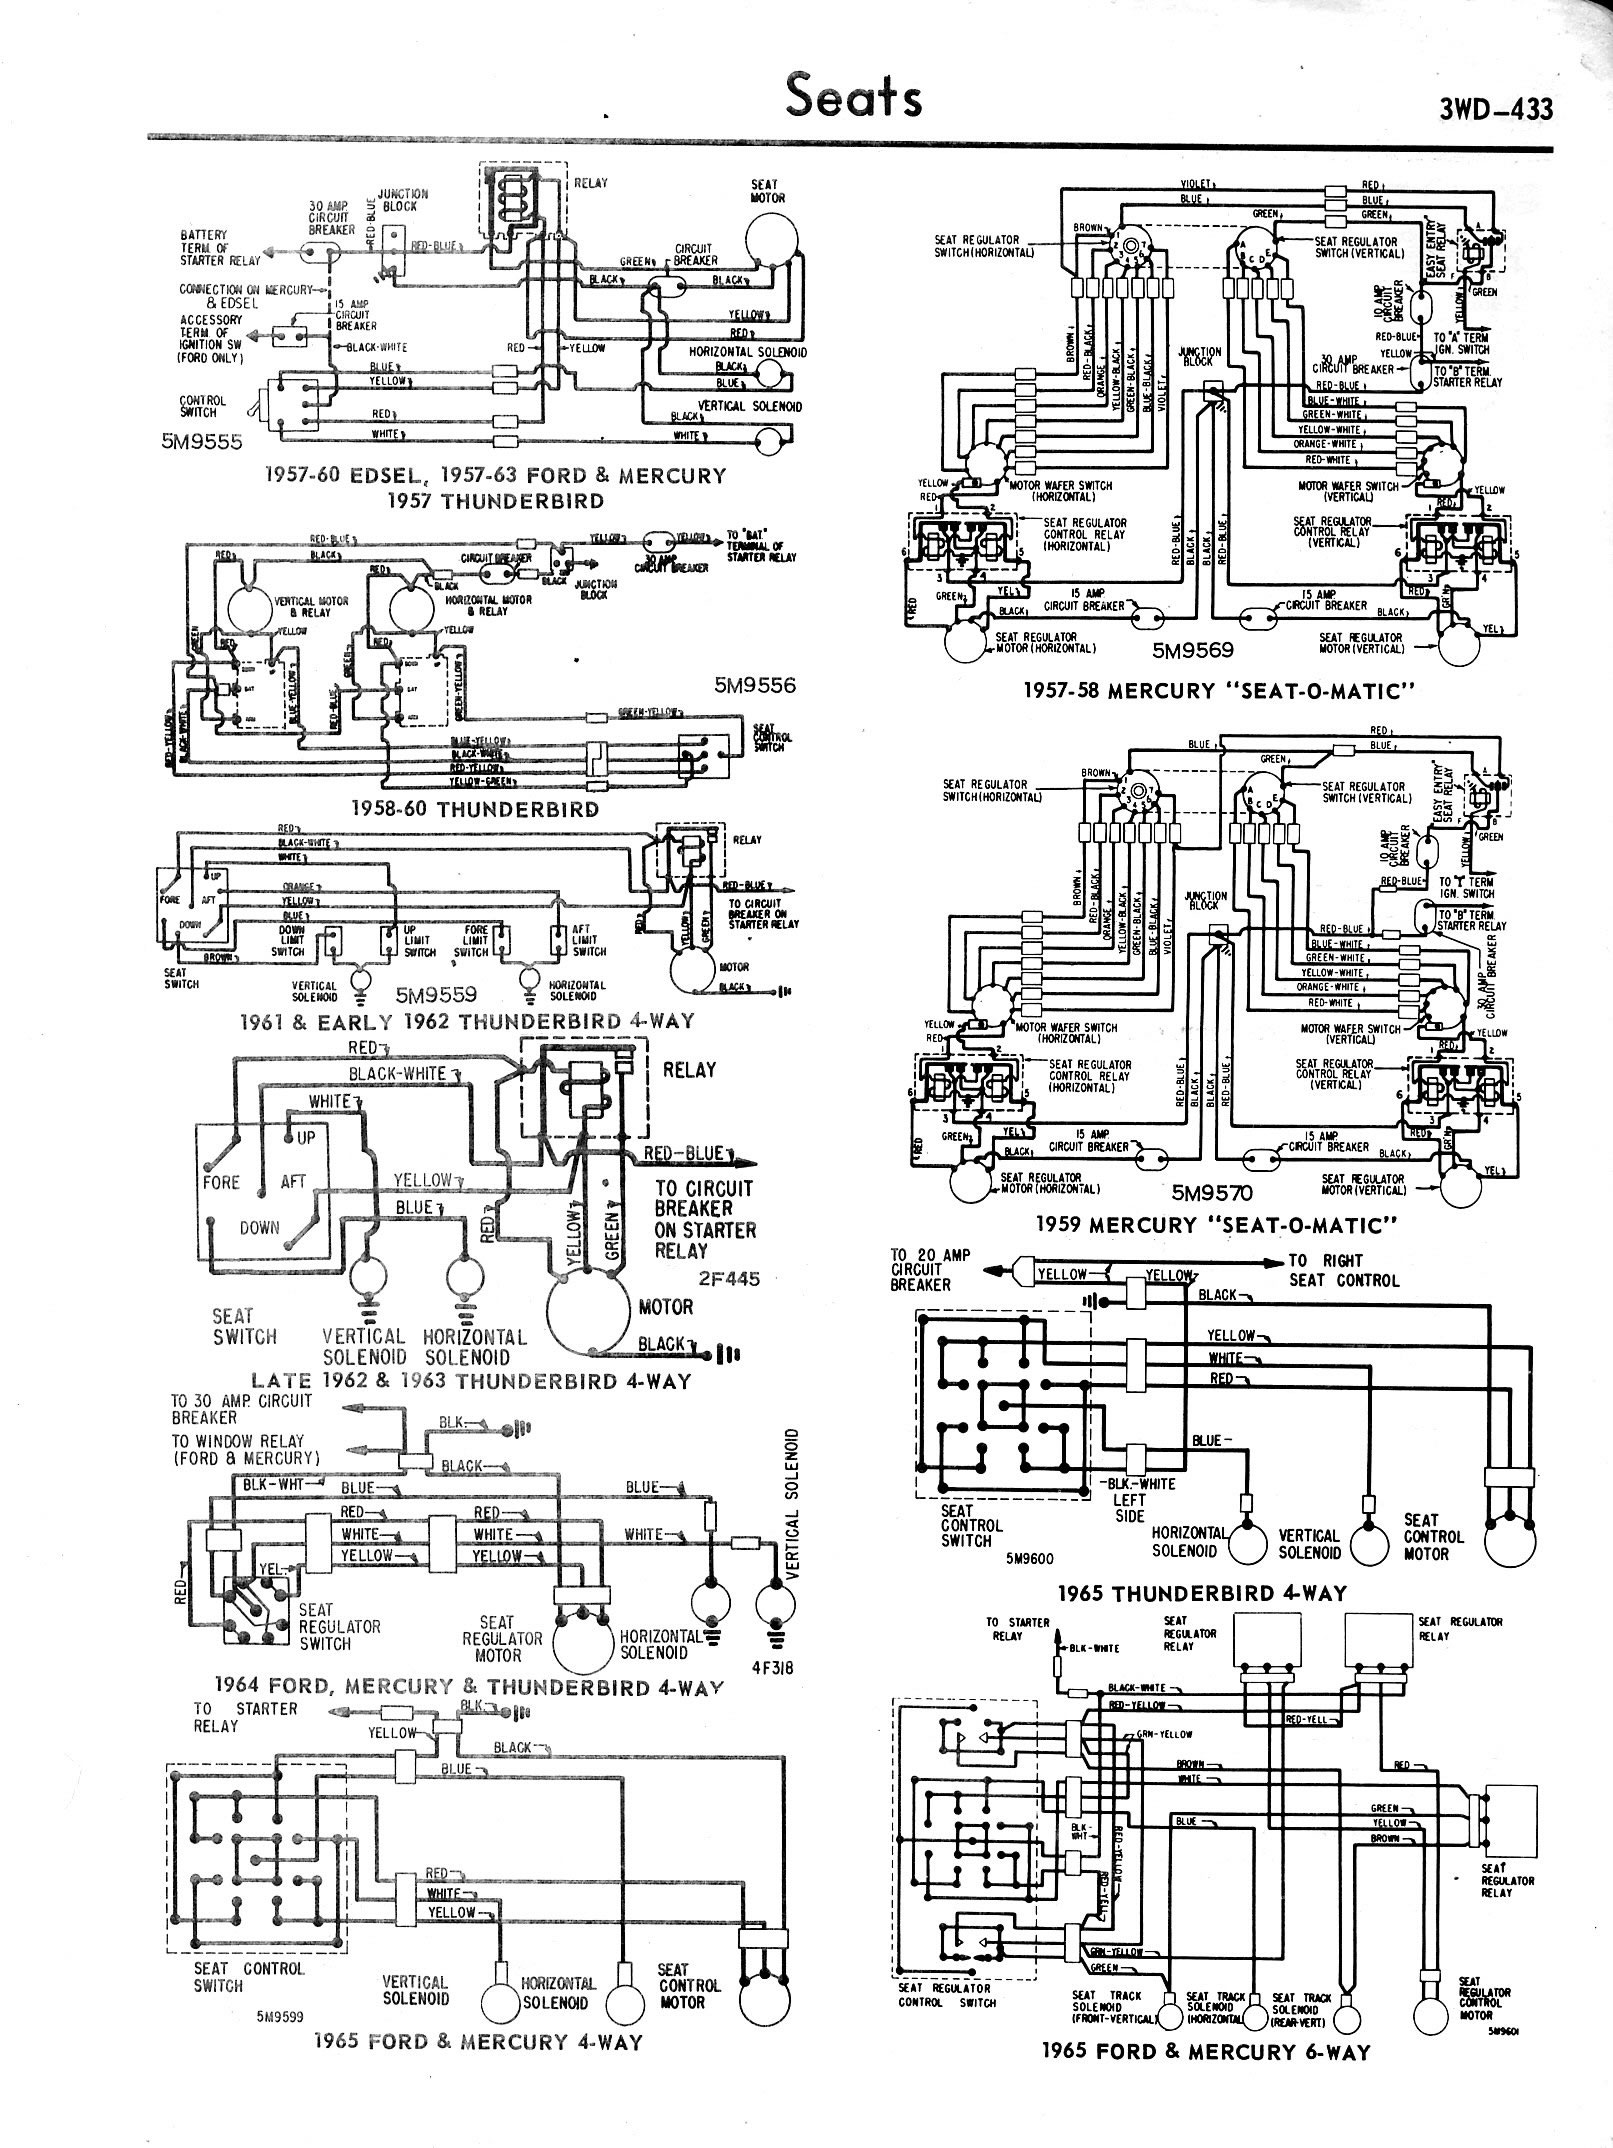 3WD 433_jpg ford diagrams 1965 ford thunderbird wiring diagram at crackthecode.co